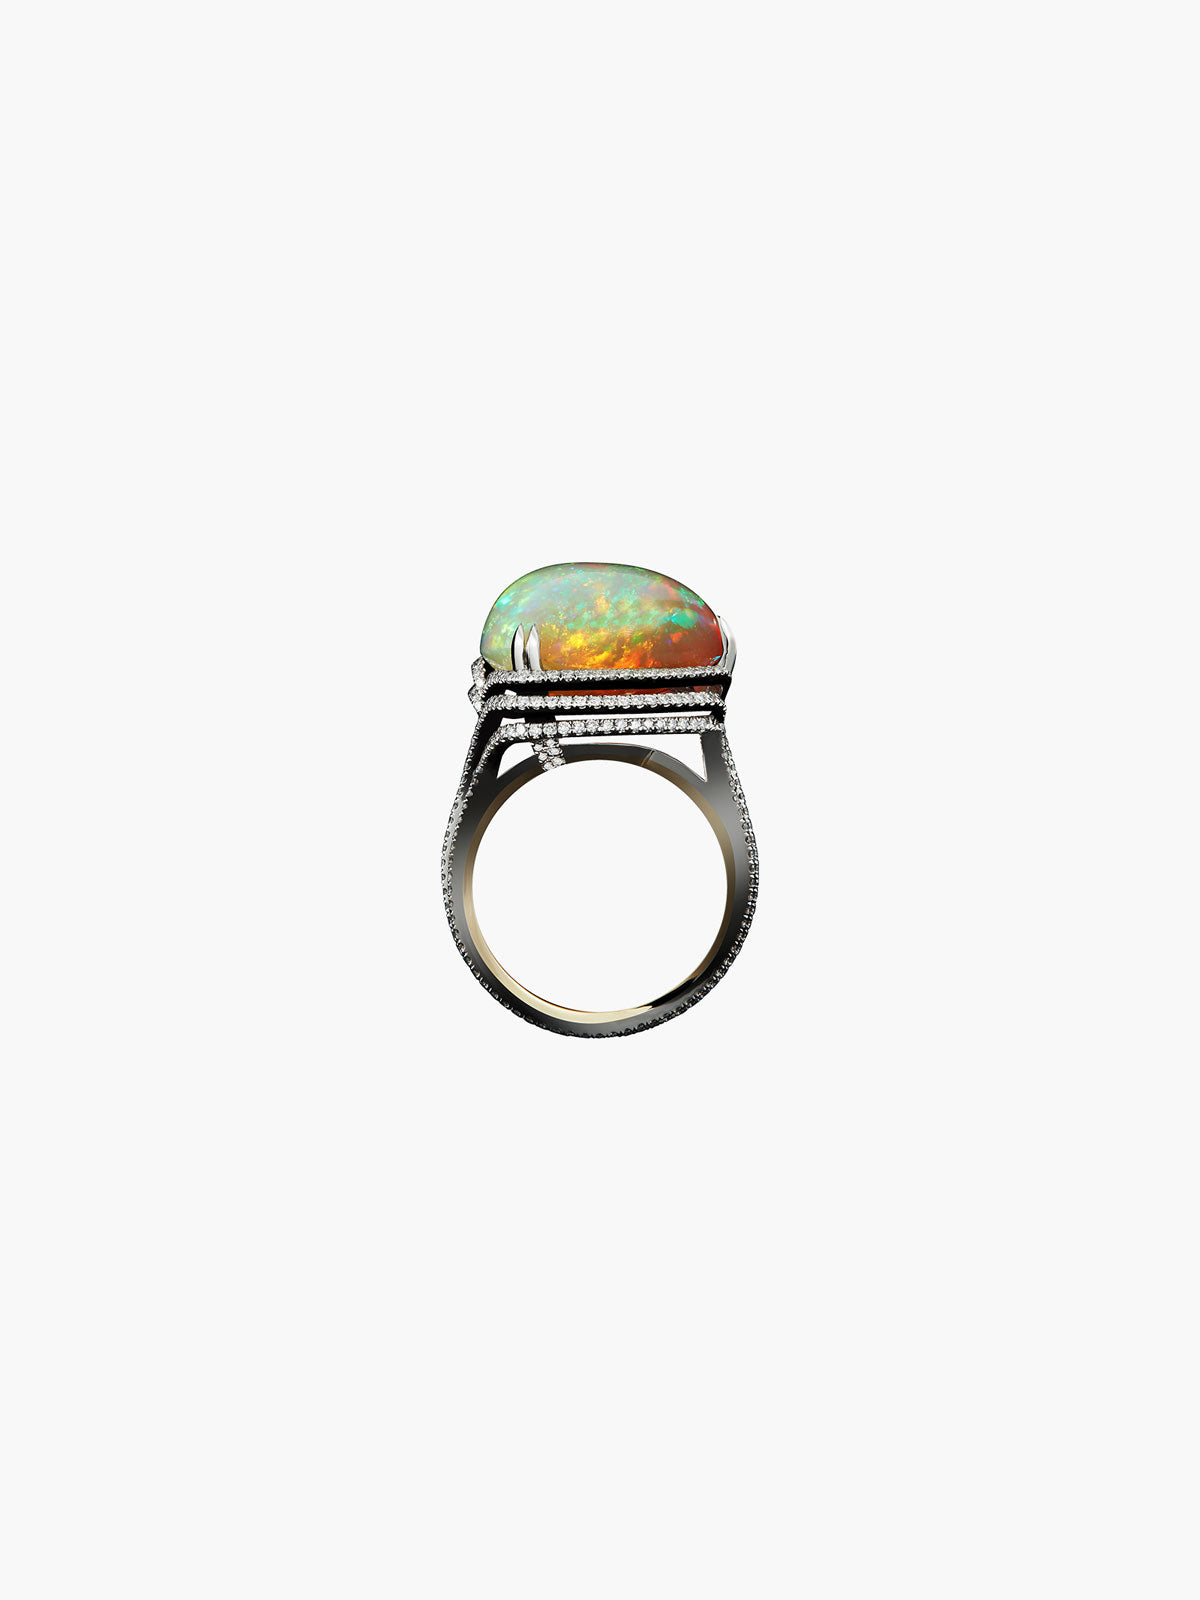 Checkerboard-Harlequin Opal & Diamond Ring